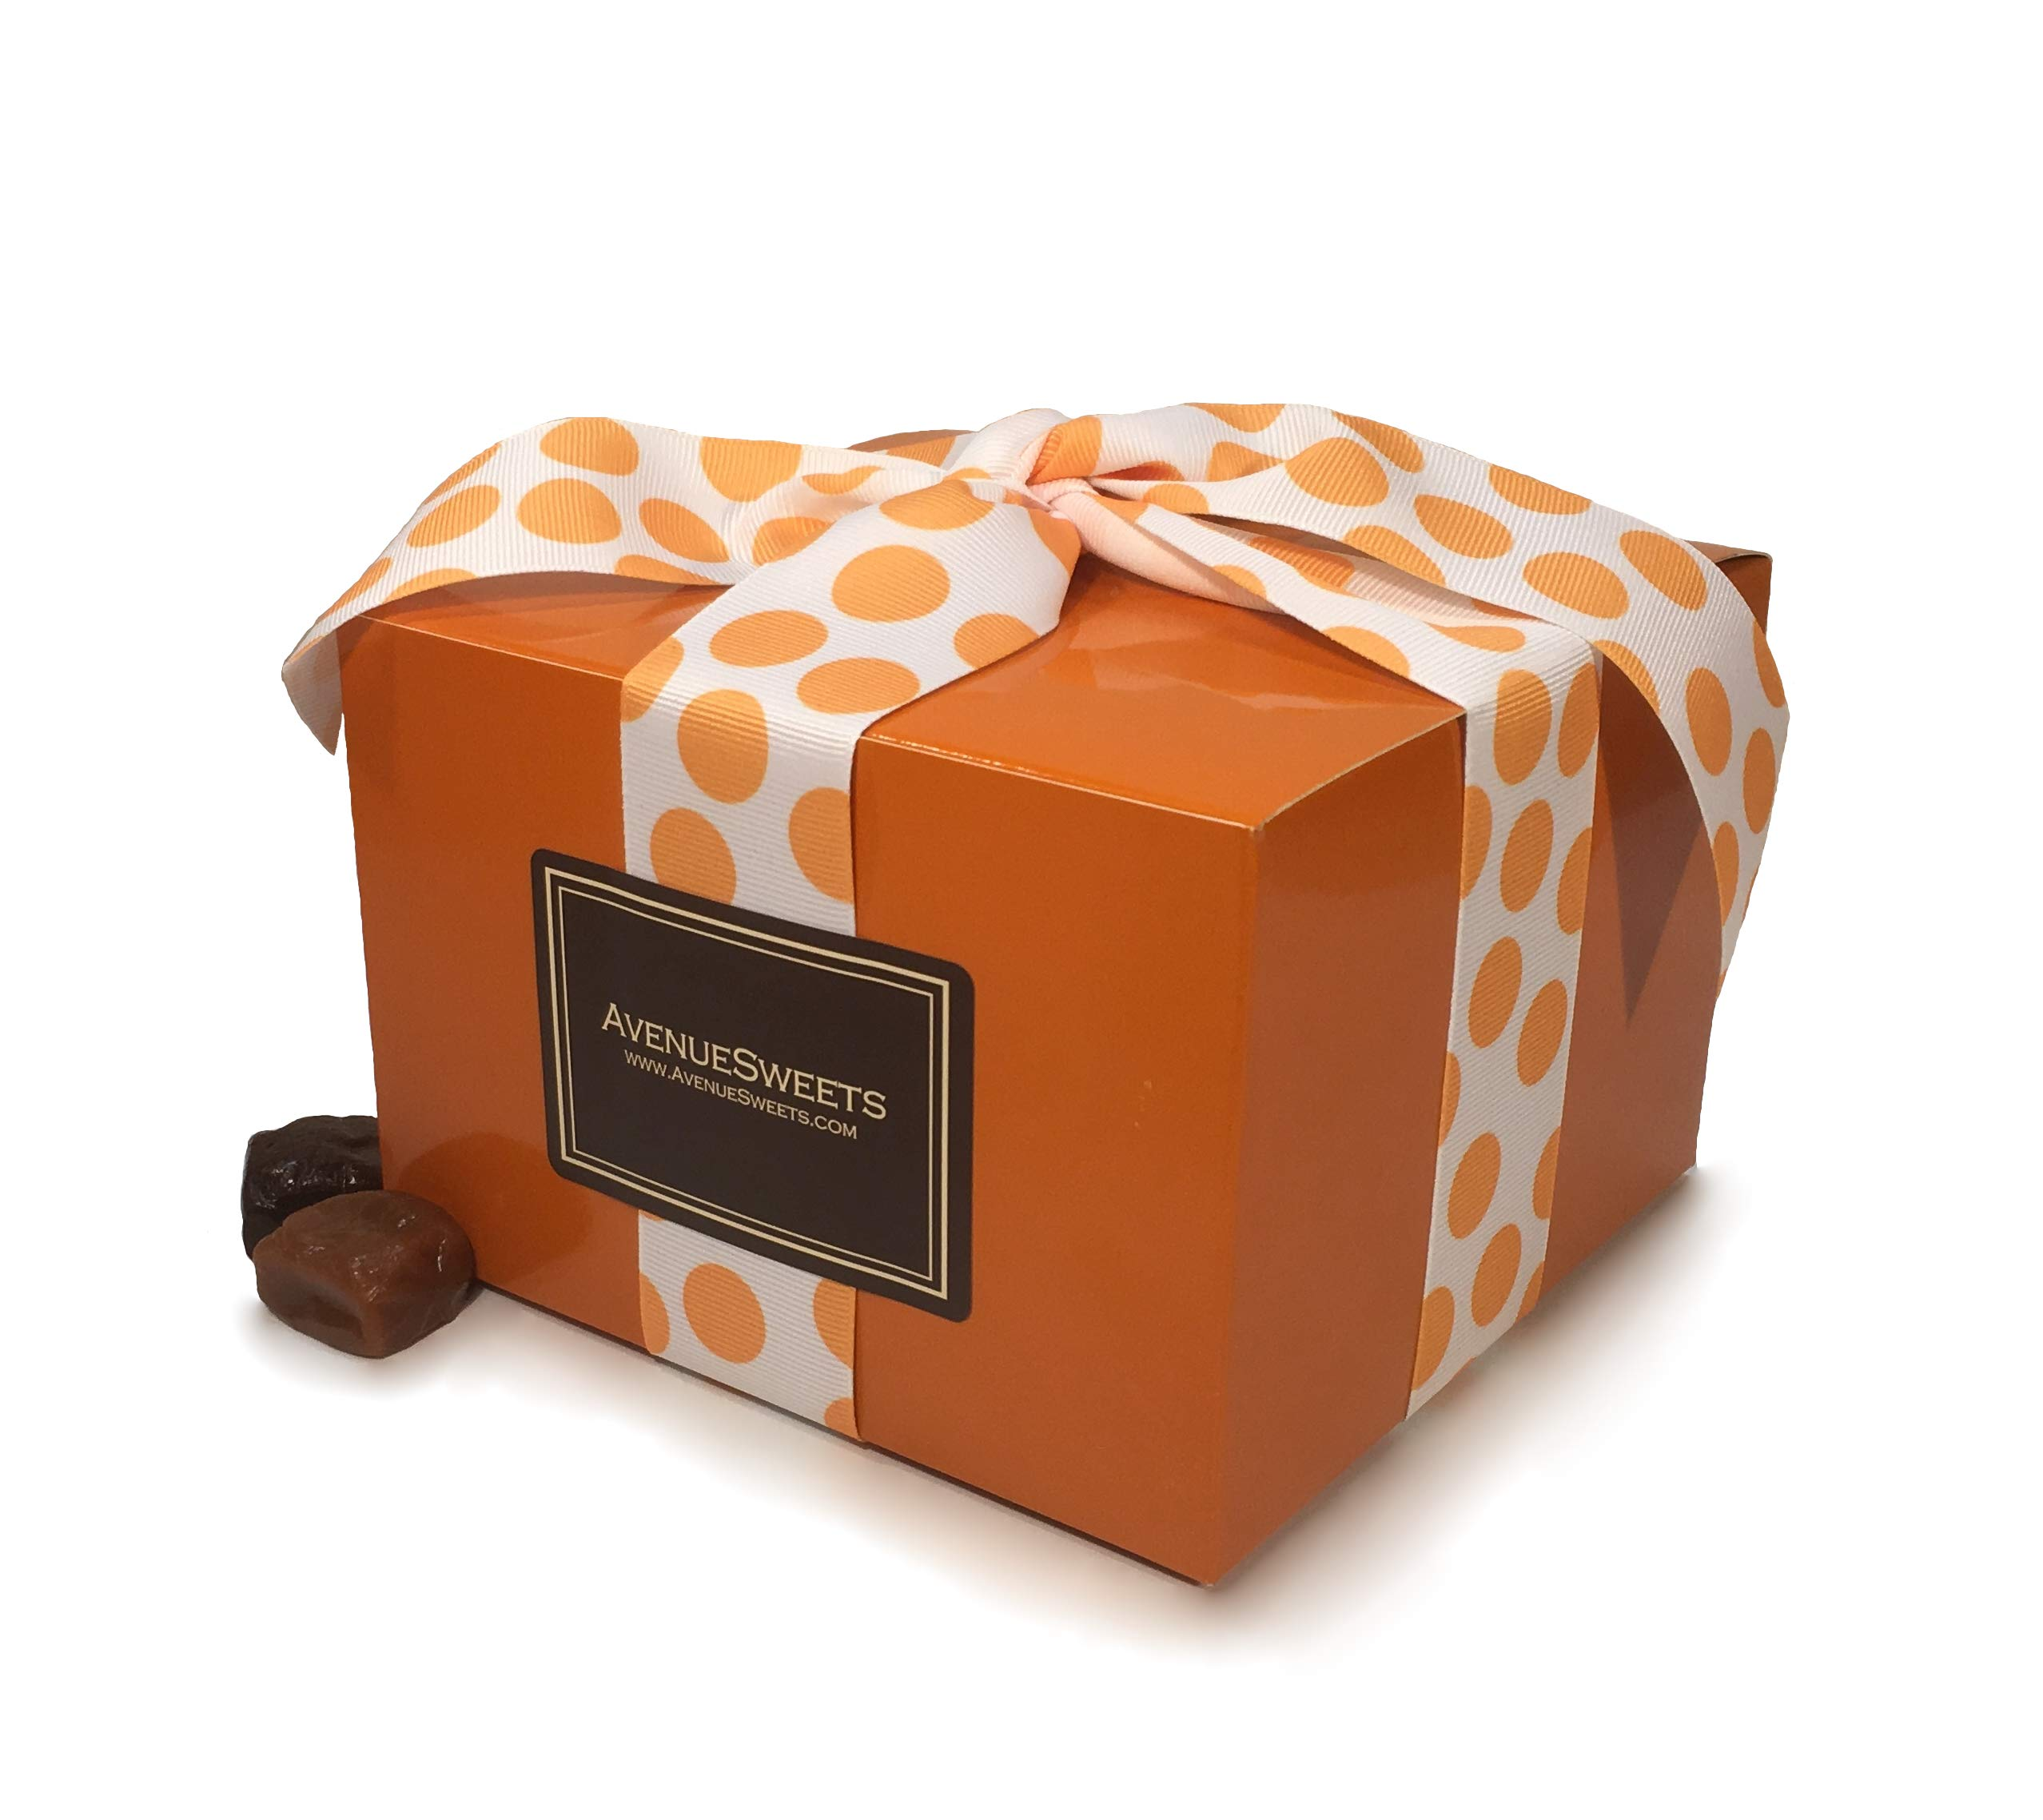 AvenueSweets - Handcrafted Individually Wrapped Soft Caramels - Orange 1.5 lb Gift Box - Customize Your Flavors by AvenueSweets